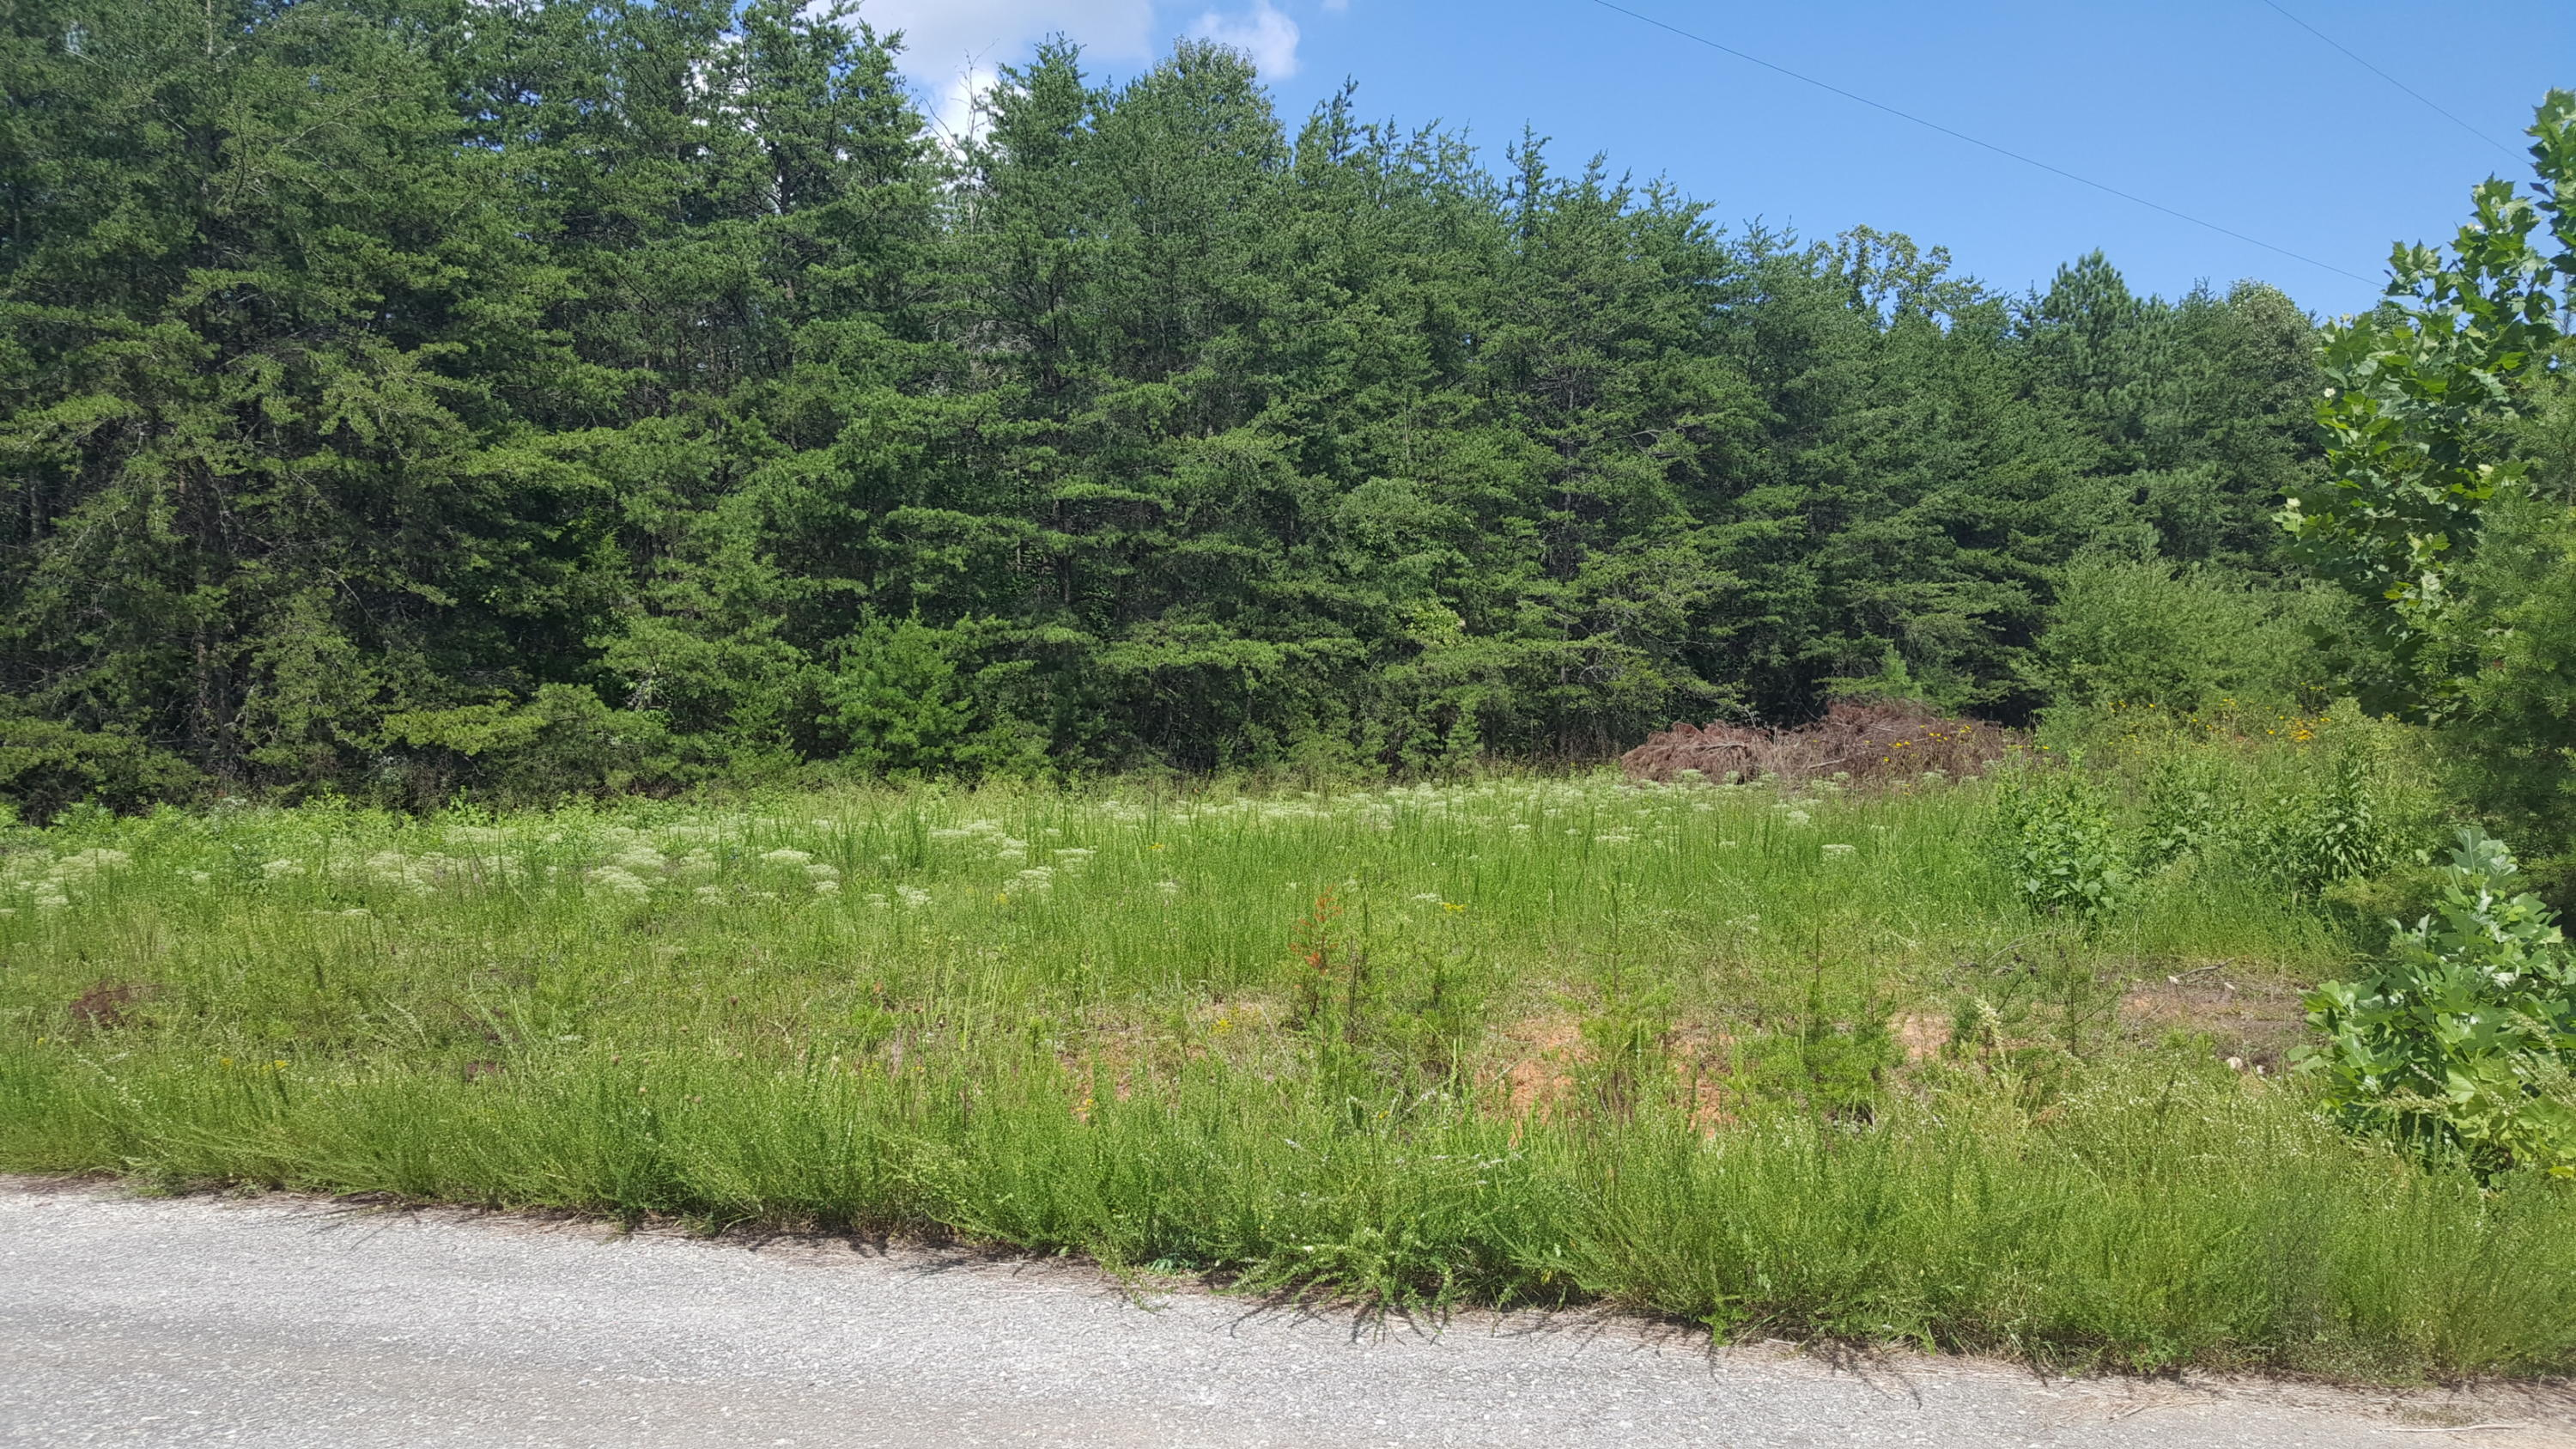 Photo of Lot 48 Dillon Cabin RD Moneta VA 24121